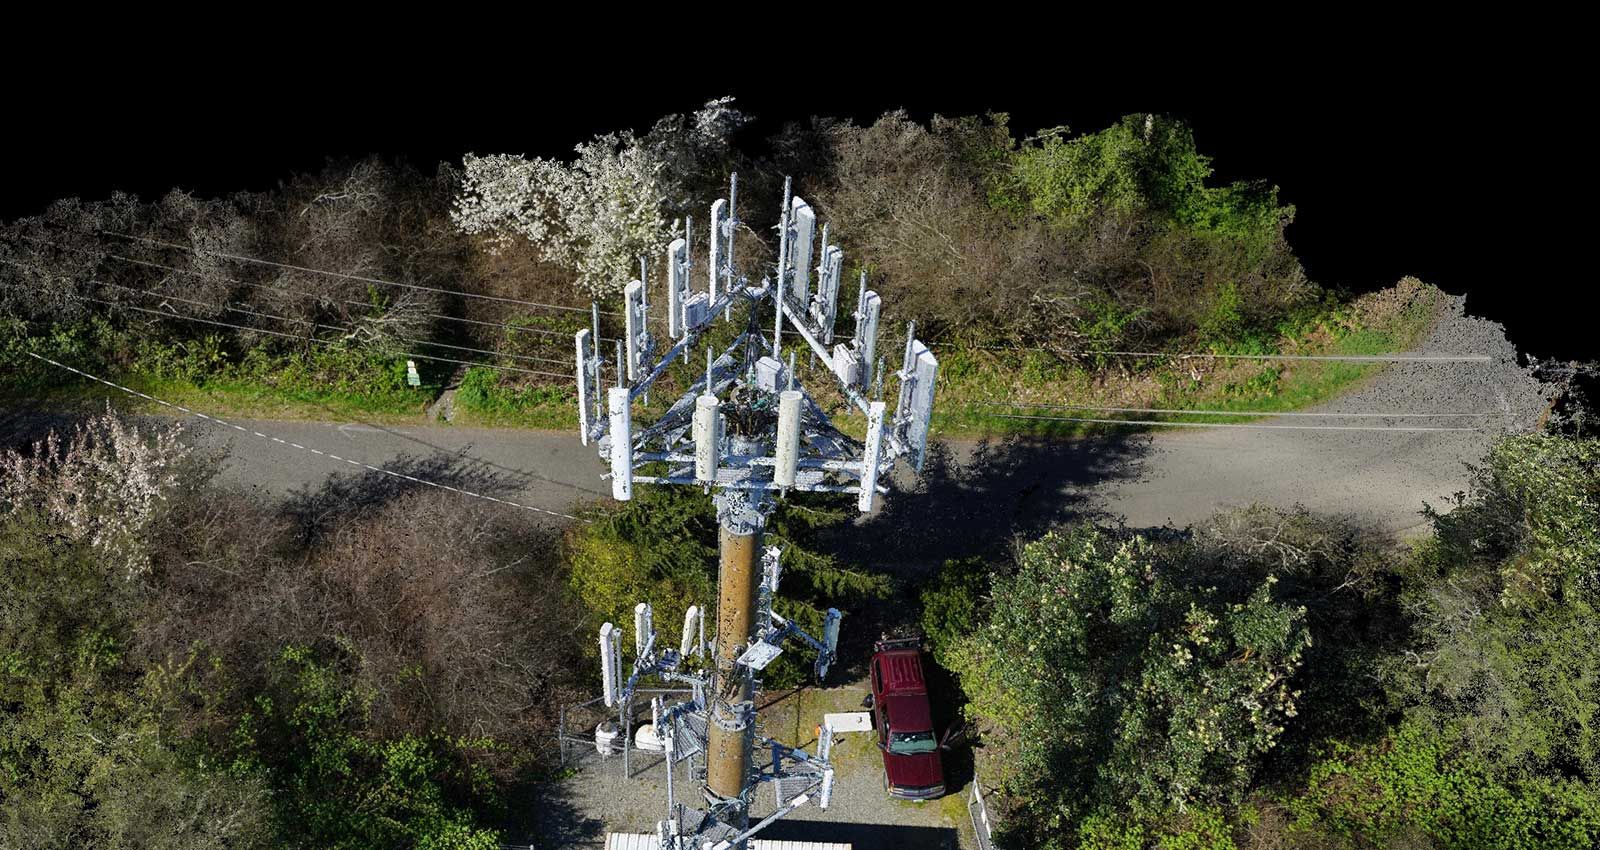 3D point cloud of the cell tower, created with drone images.